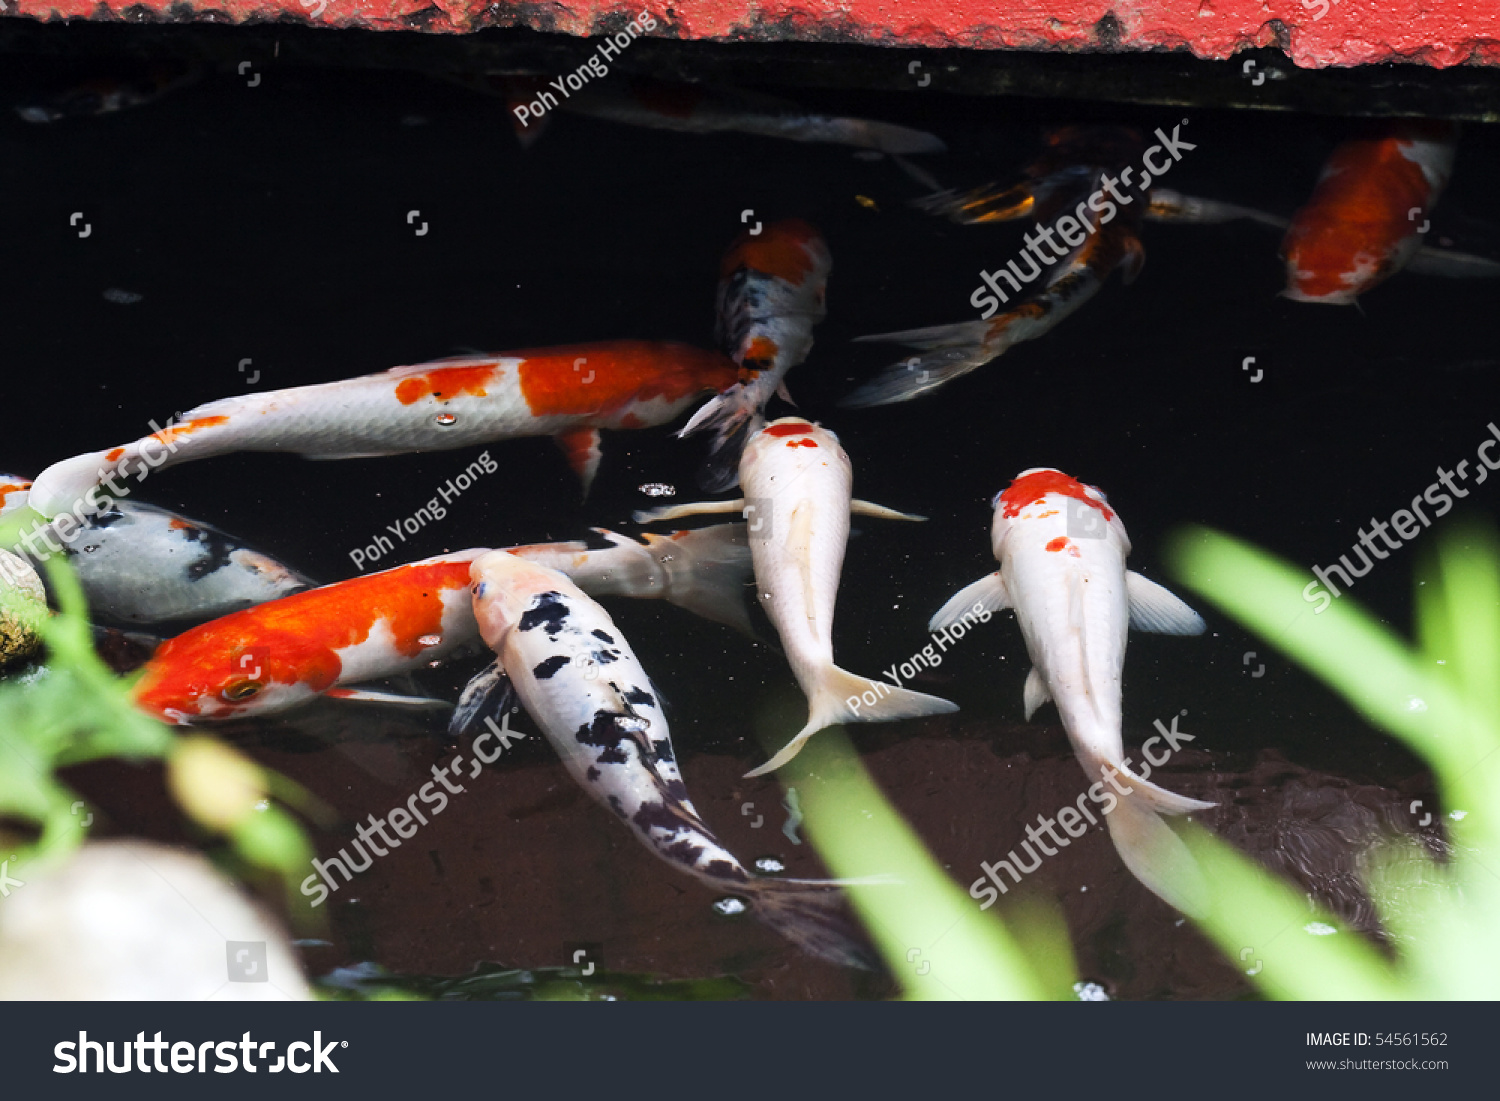 Japanese Koi Fish Swimming Pond Stock Photo 54561562 ... Japanese Koi Fish Swimming